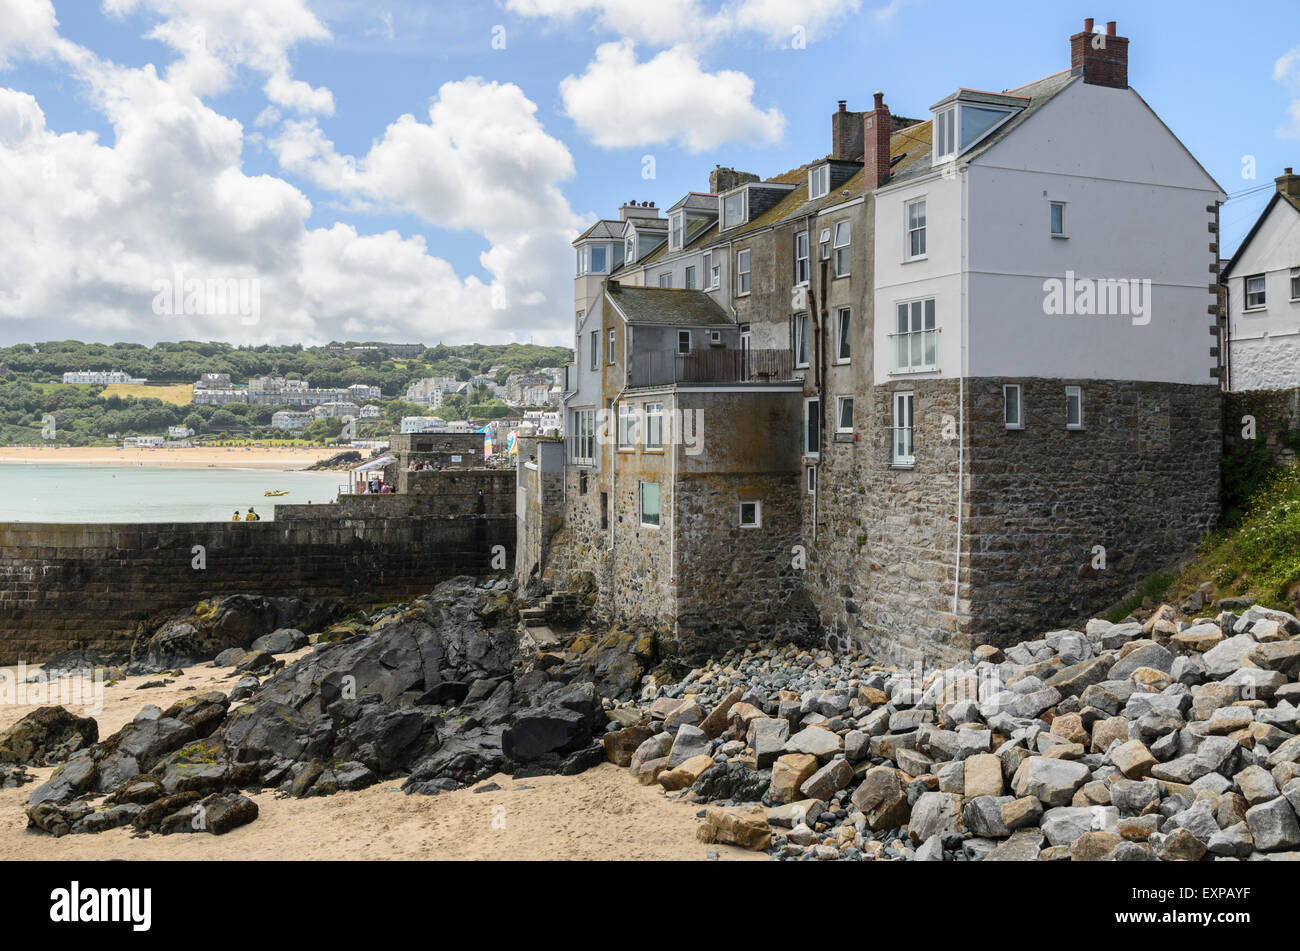 Homes overlooking Bamaluz Beach, St Ives, Cornwall, England, UK. St Ives is a popular fishing and artists town. - Stock Image